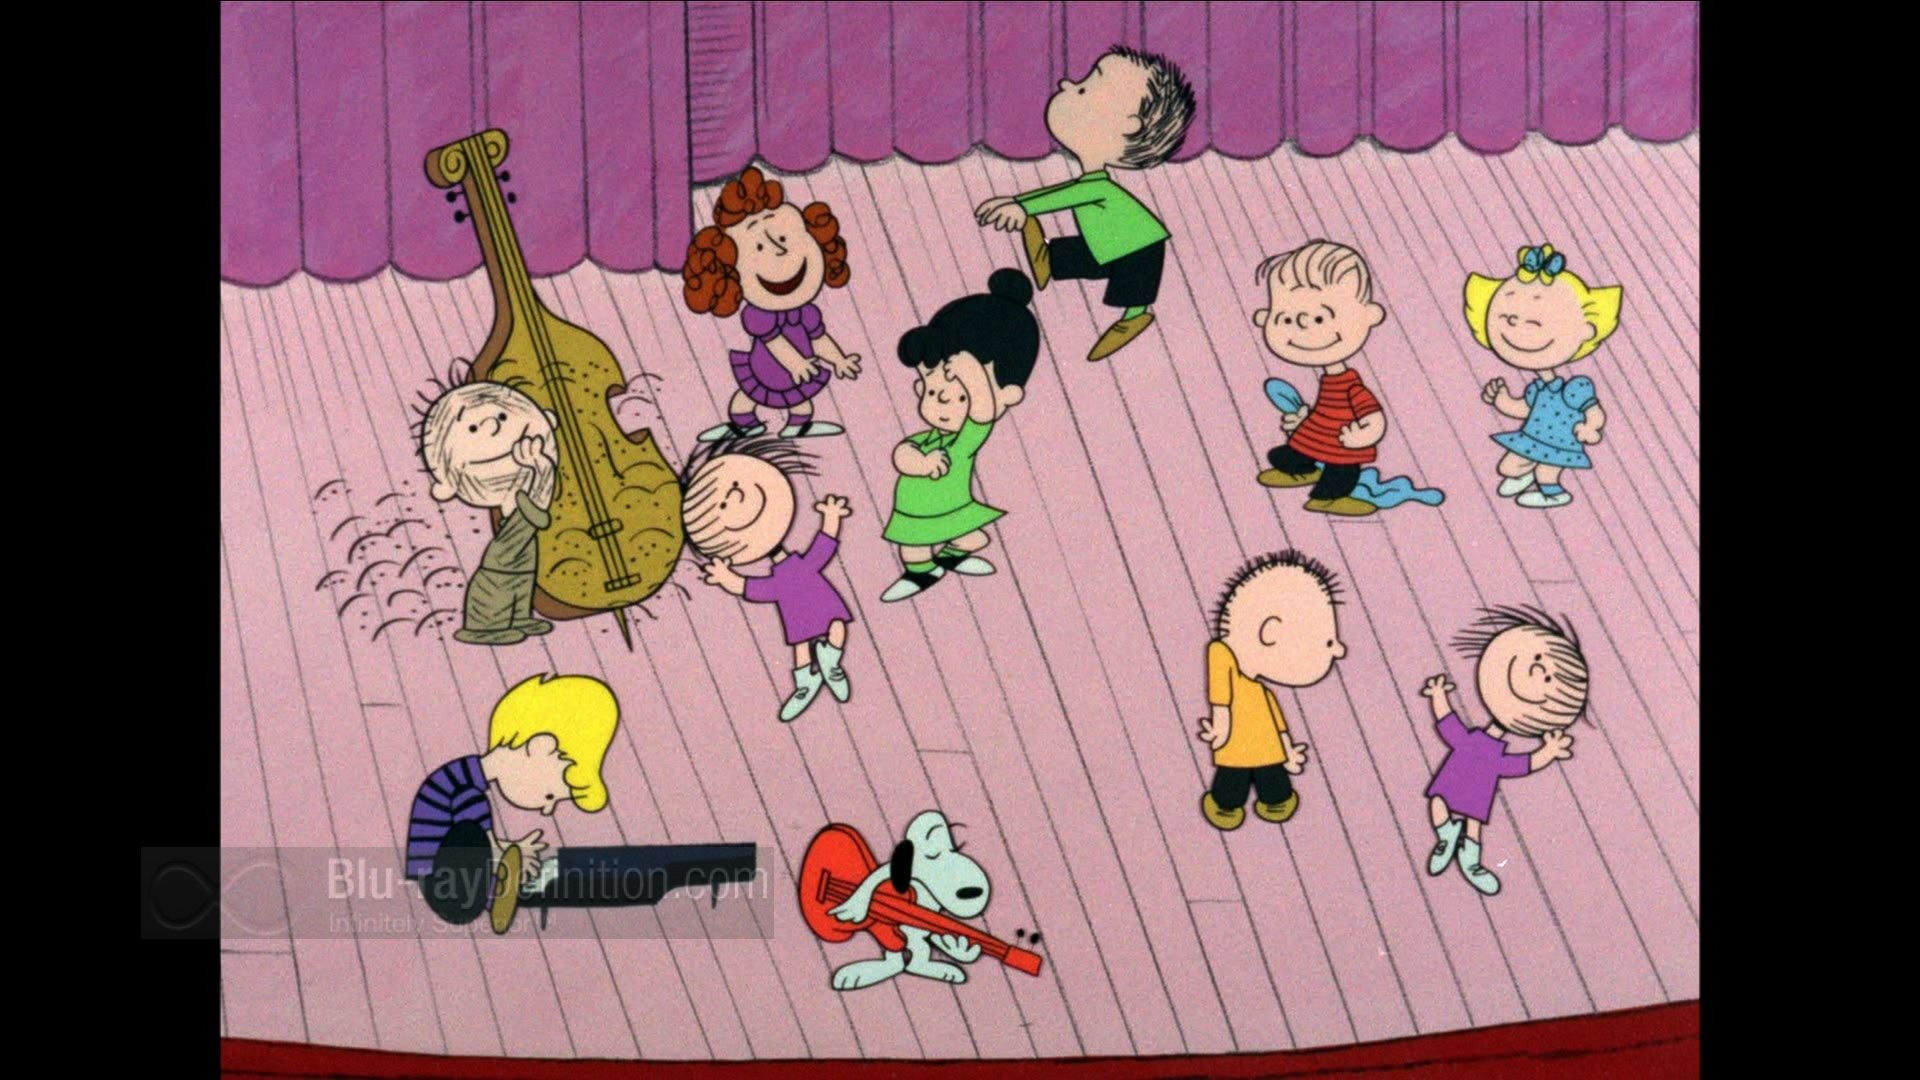 charlie brown article 2 - Peanuts Christmas Special